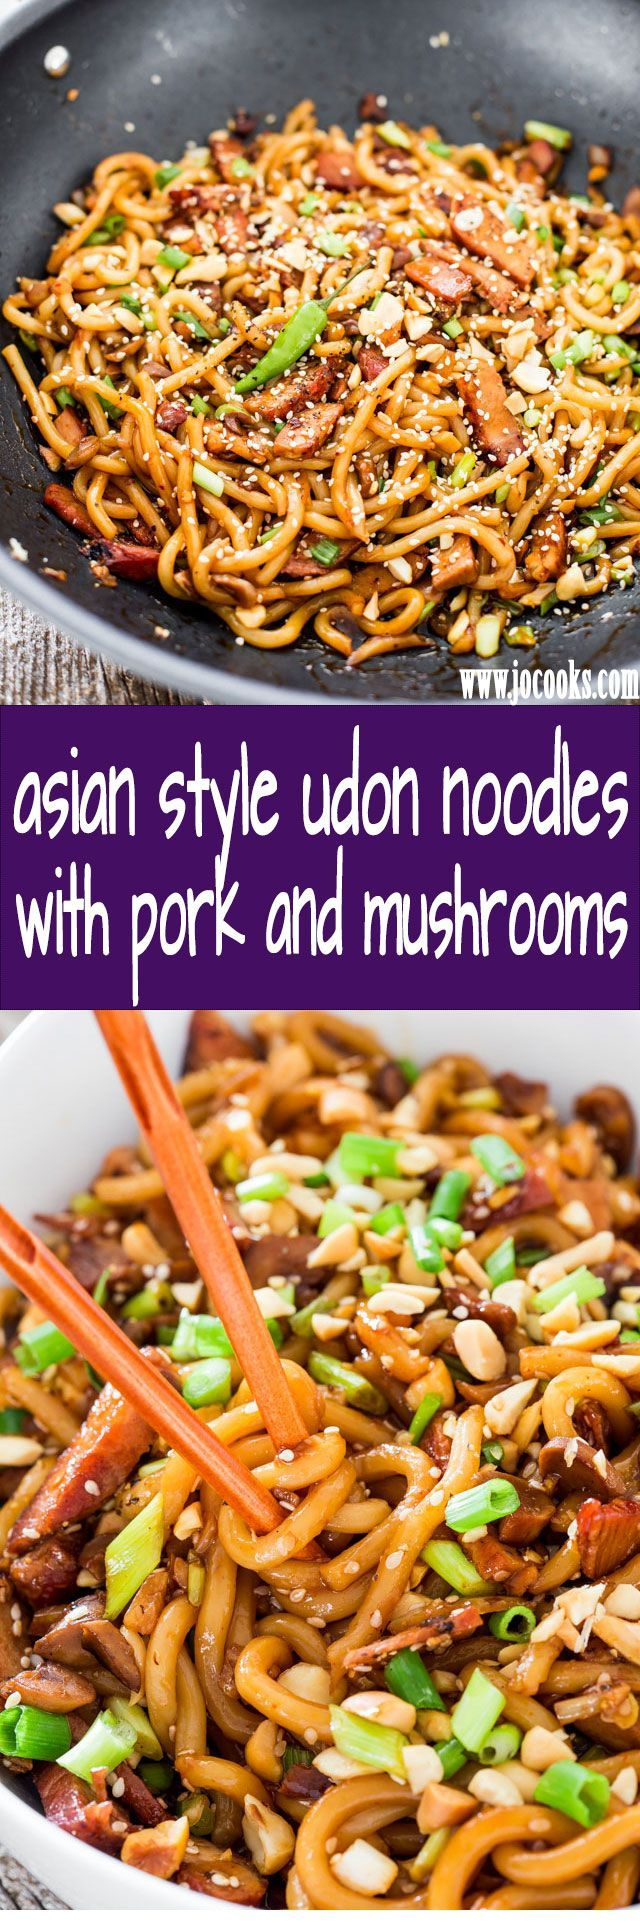 Asian Style Udon Noodles with Pork and Mushrooms - a super quick and incredibly easy udon noodles dish with pork, mushrooms and a spicy sauce. Dinner in 20 minutes tops!